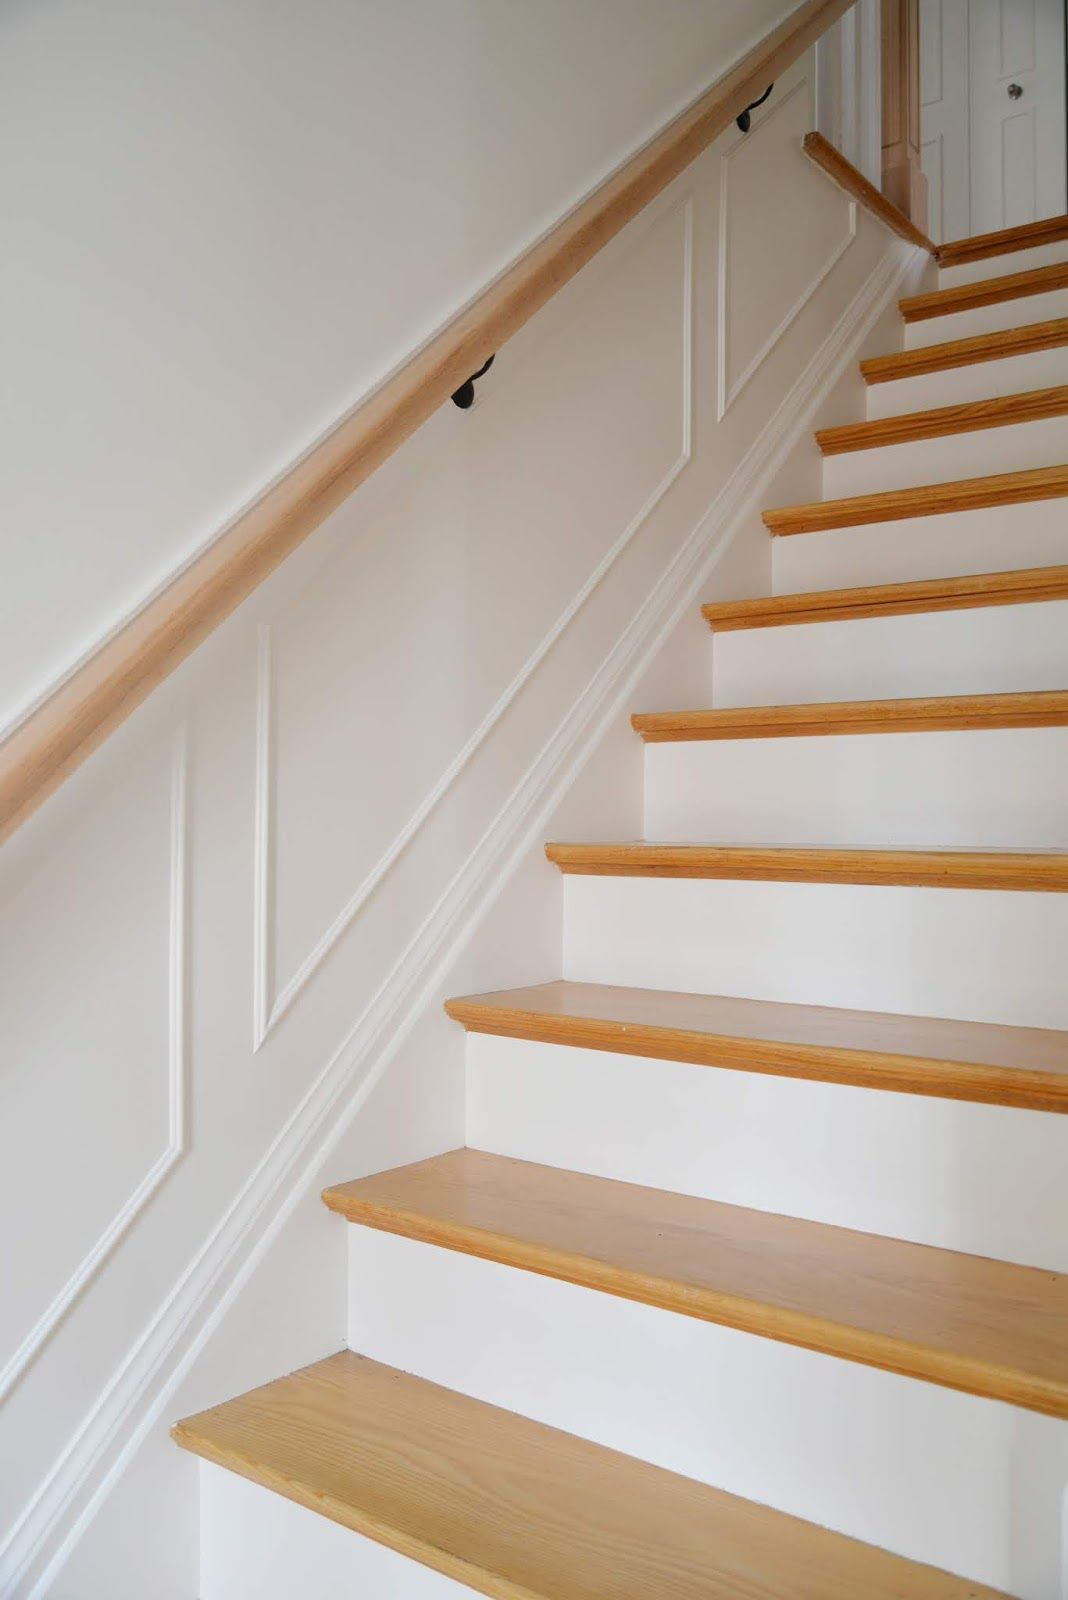 A Bright White Wow 1 Day Paint Transformation Stair Paneling House Trim Work